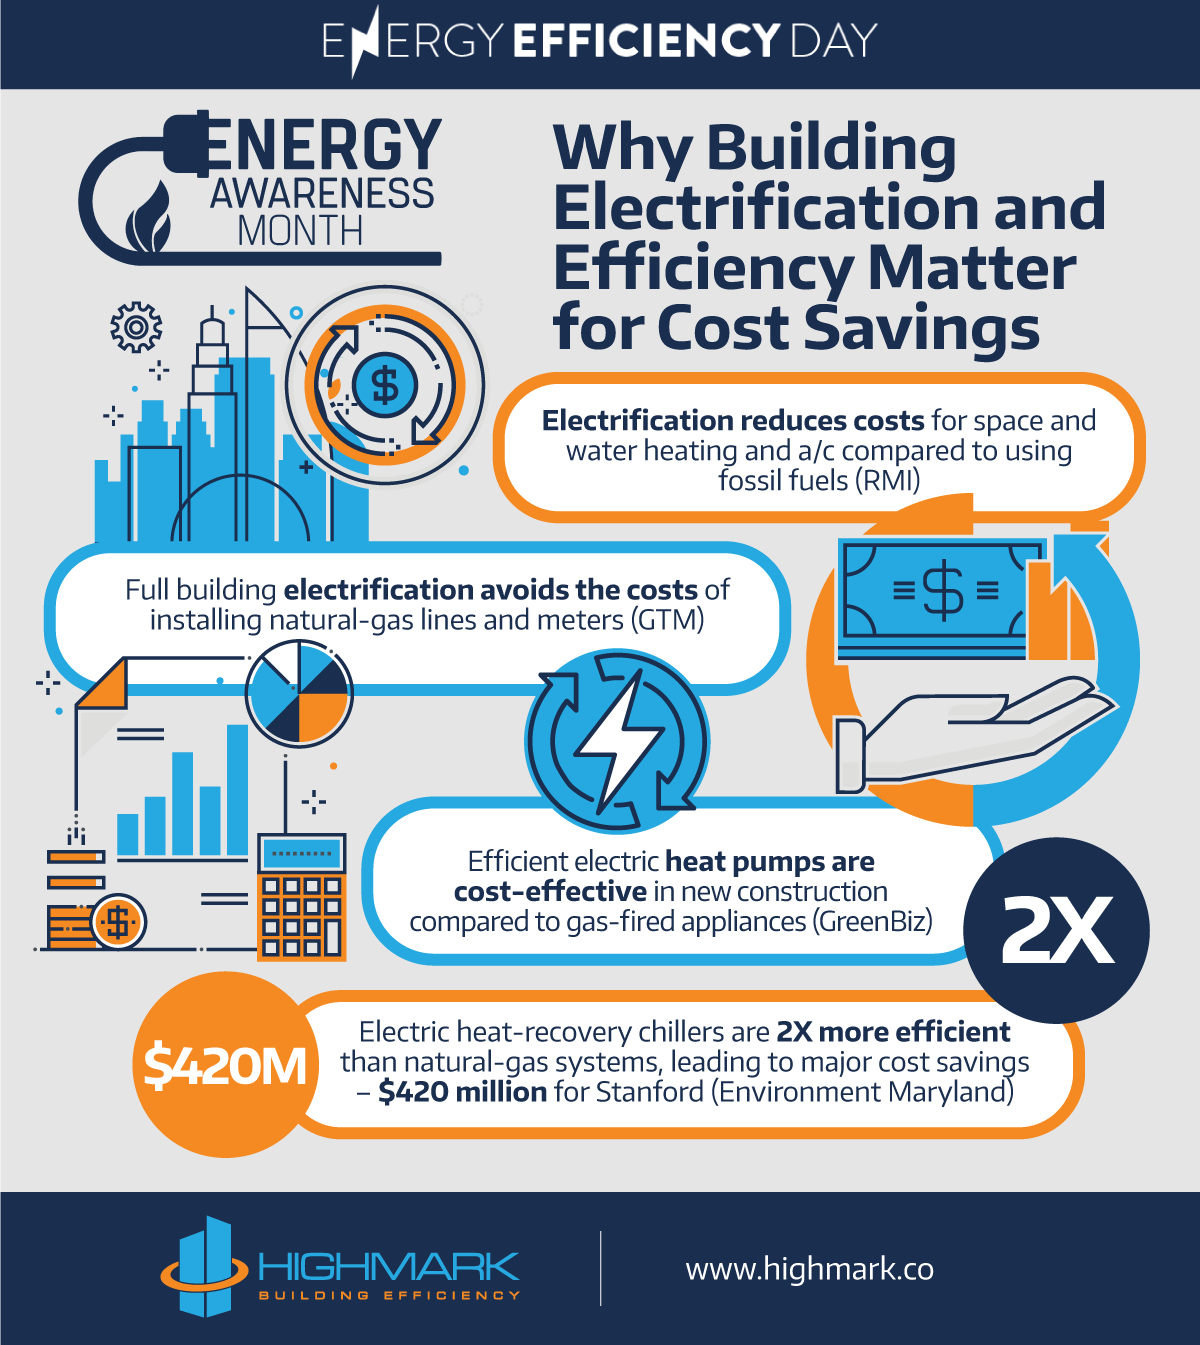 Why Building Electrification and Efficiency Matter for Cost Savings